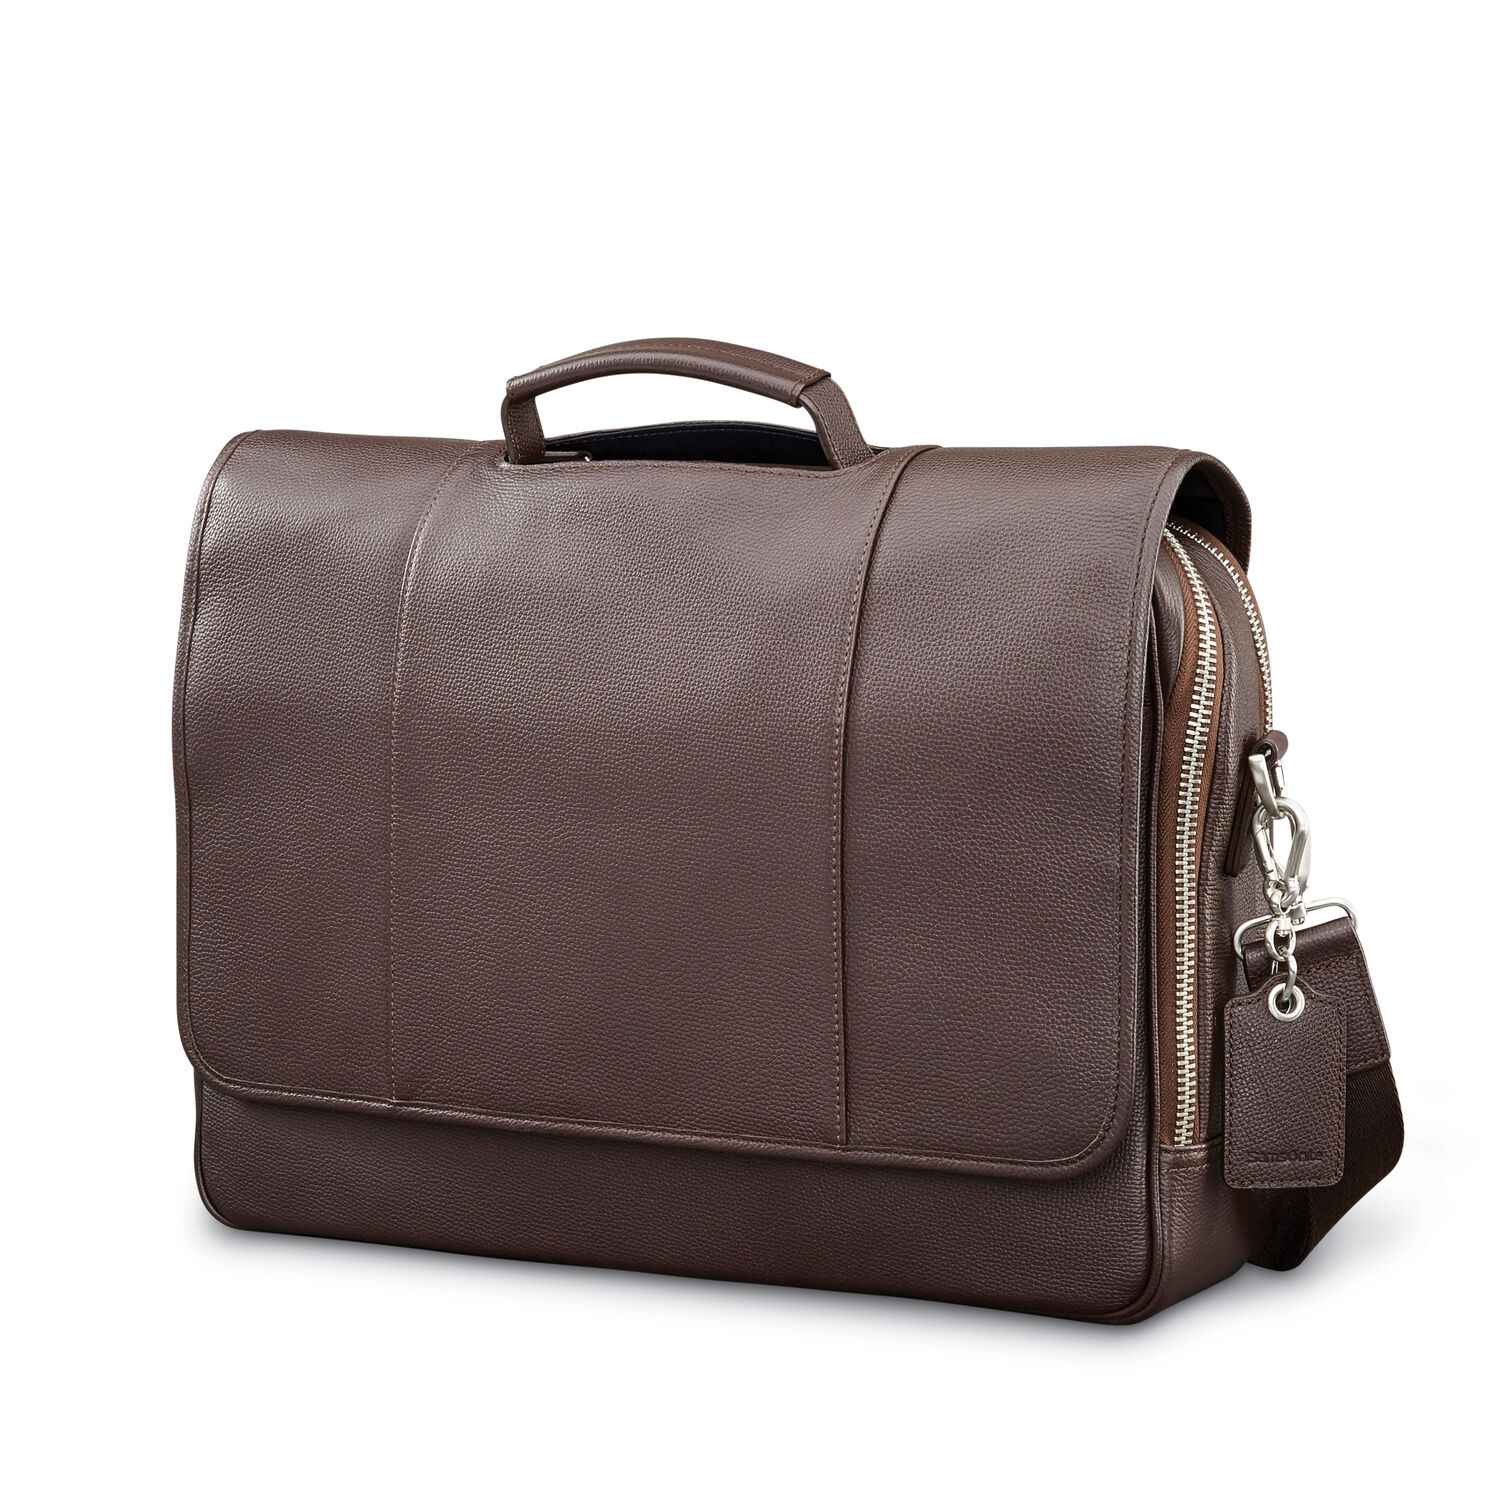 Samsonite Mens Leather Classic Flap Briefcase in the color Dark Brown. 2f6b75ed7be3a